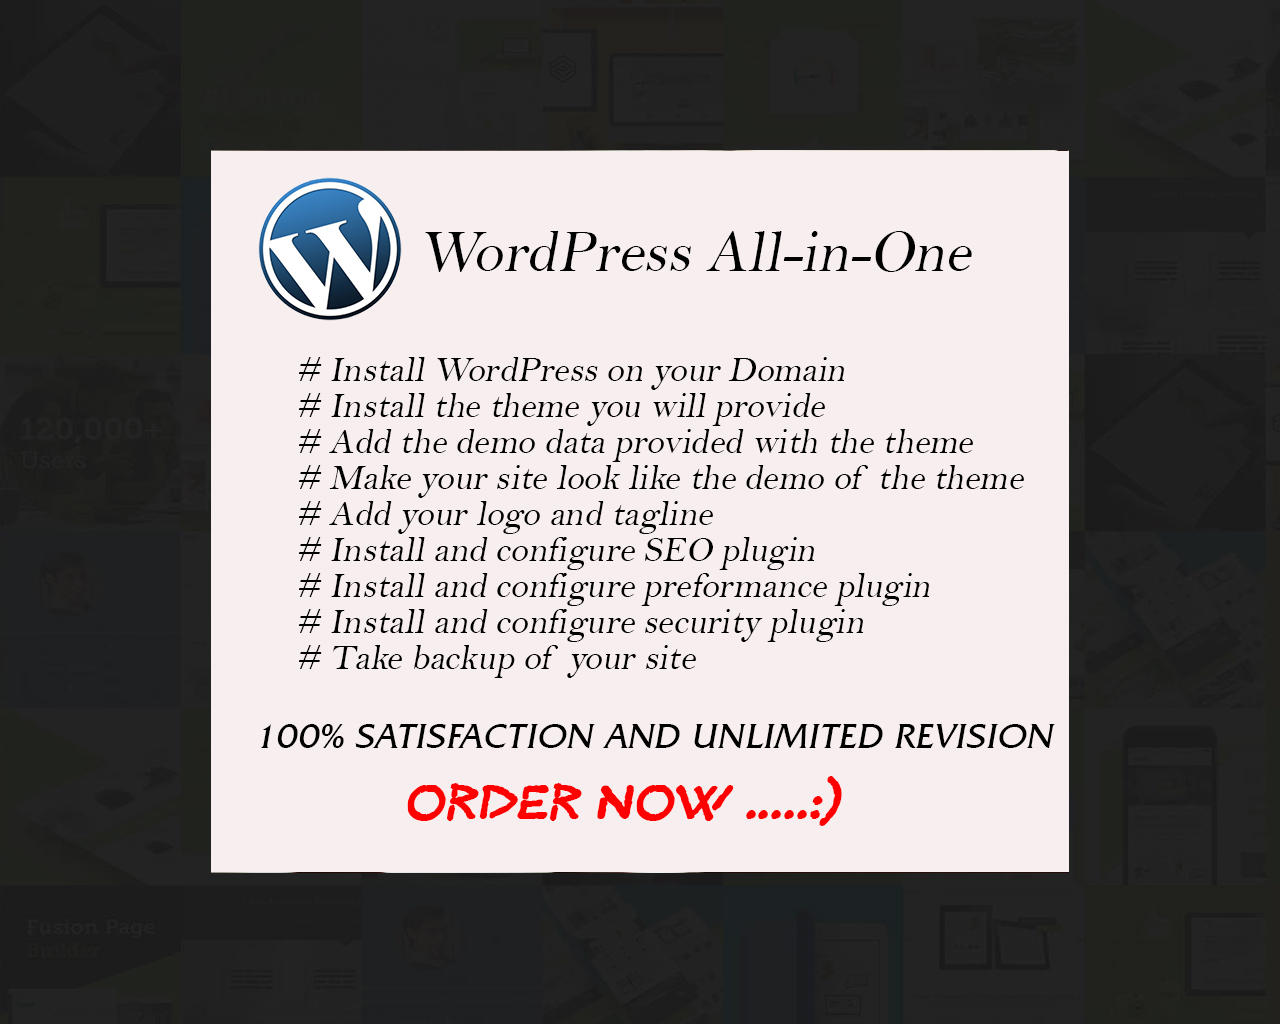 All In One WordPress Theme Installation With Demo Data